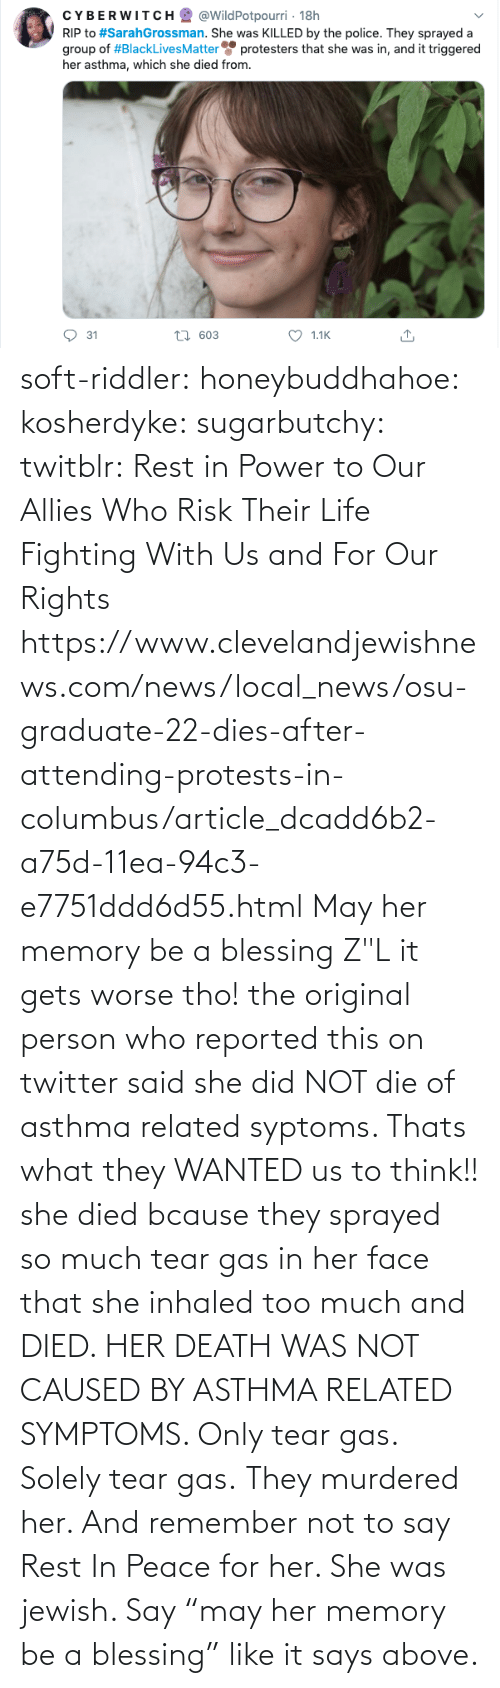 "face: soft-riddler:  honeybuddhahoe:  kosherdyke:  sugarbutchy:  twitblr: Rest in Power to Our Allies Who Risk Their Life Fighting With Us and For Our Rights https://www.clevelandjewishnews.com/news/local_news/osu-graduate-22-dies-after-attending-protests-in-columbus/article_dcadd6b2-a75d-11ea-94c3-e7751ddd6d55.html    May her memory be a blessing Z""L  it gets worse tho! the original person who reported this on twitter said she did NOT die of asthma related syptoms. Thats what they WANTED us to think!! she died bcause they sprayed so much tear gas in her face that she inhaled too much and DIED. HER DEATH WAS NOT CAUSED BY ASTHMA RELATED SYMPTOMS. Only tear gas. Solely tear gas. They murdered her.     And remember not to say Rest In Peace for her. She was jewish. Say ""may her memory be a blessing"" like it says above."